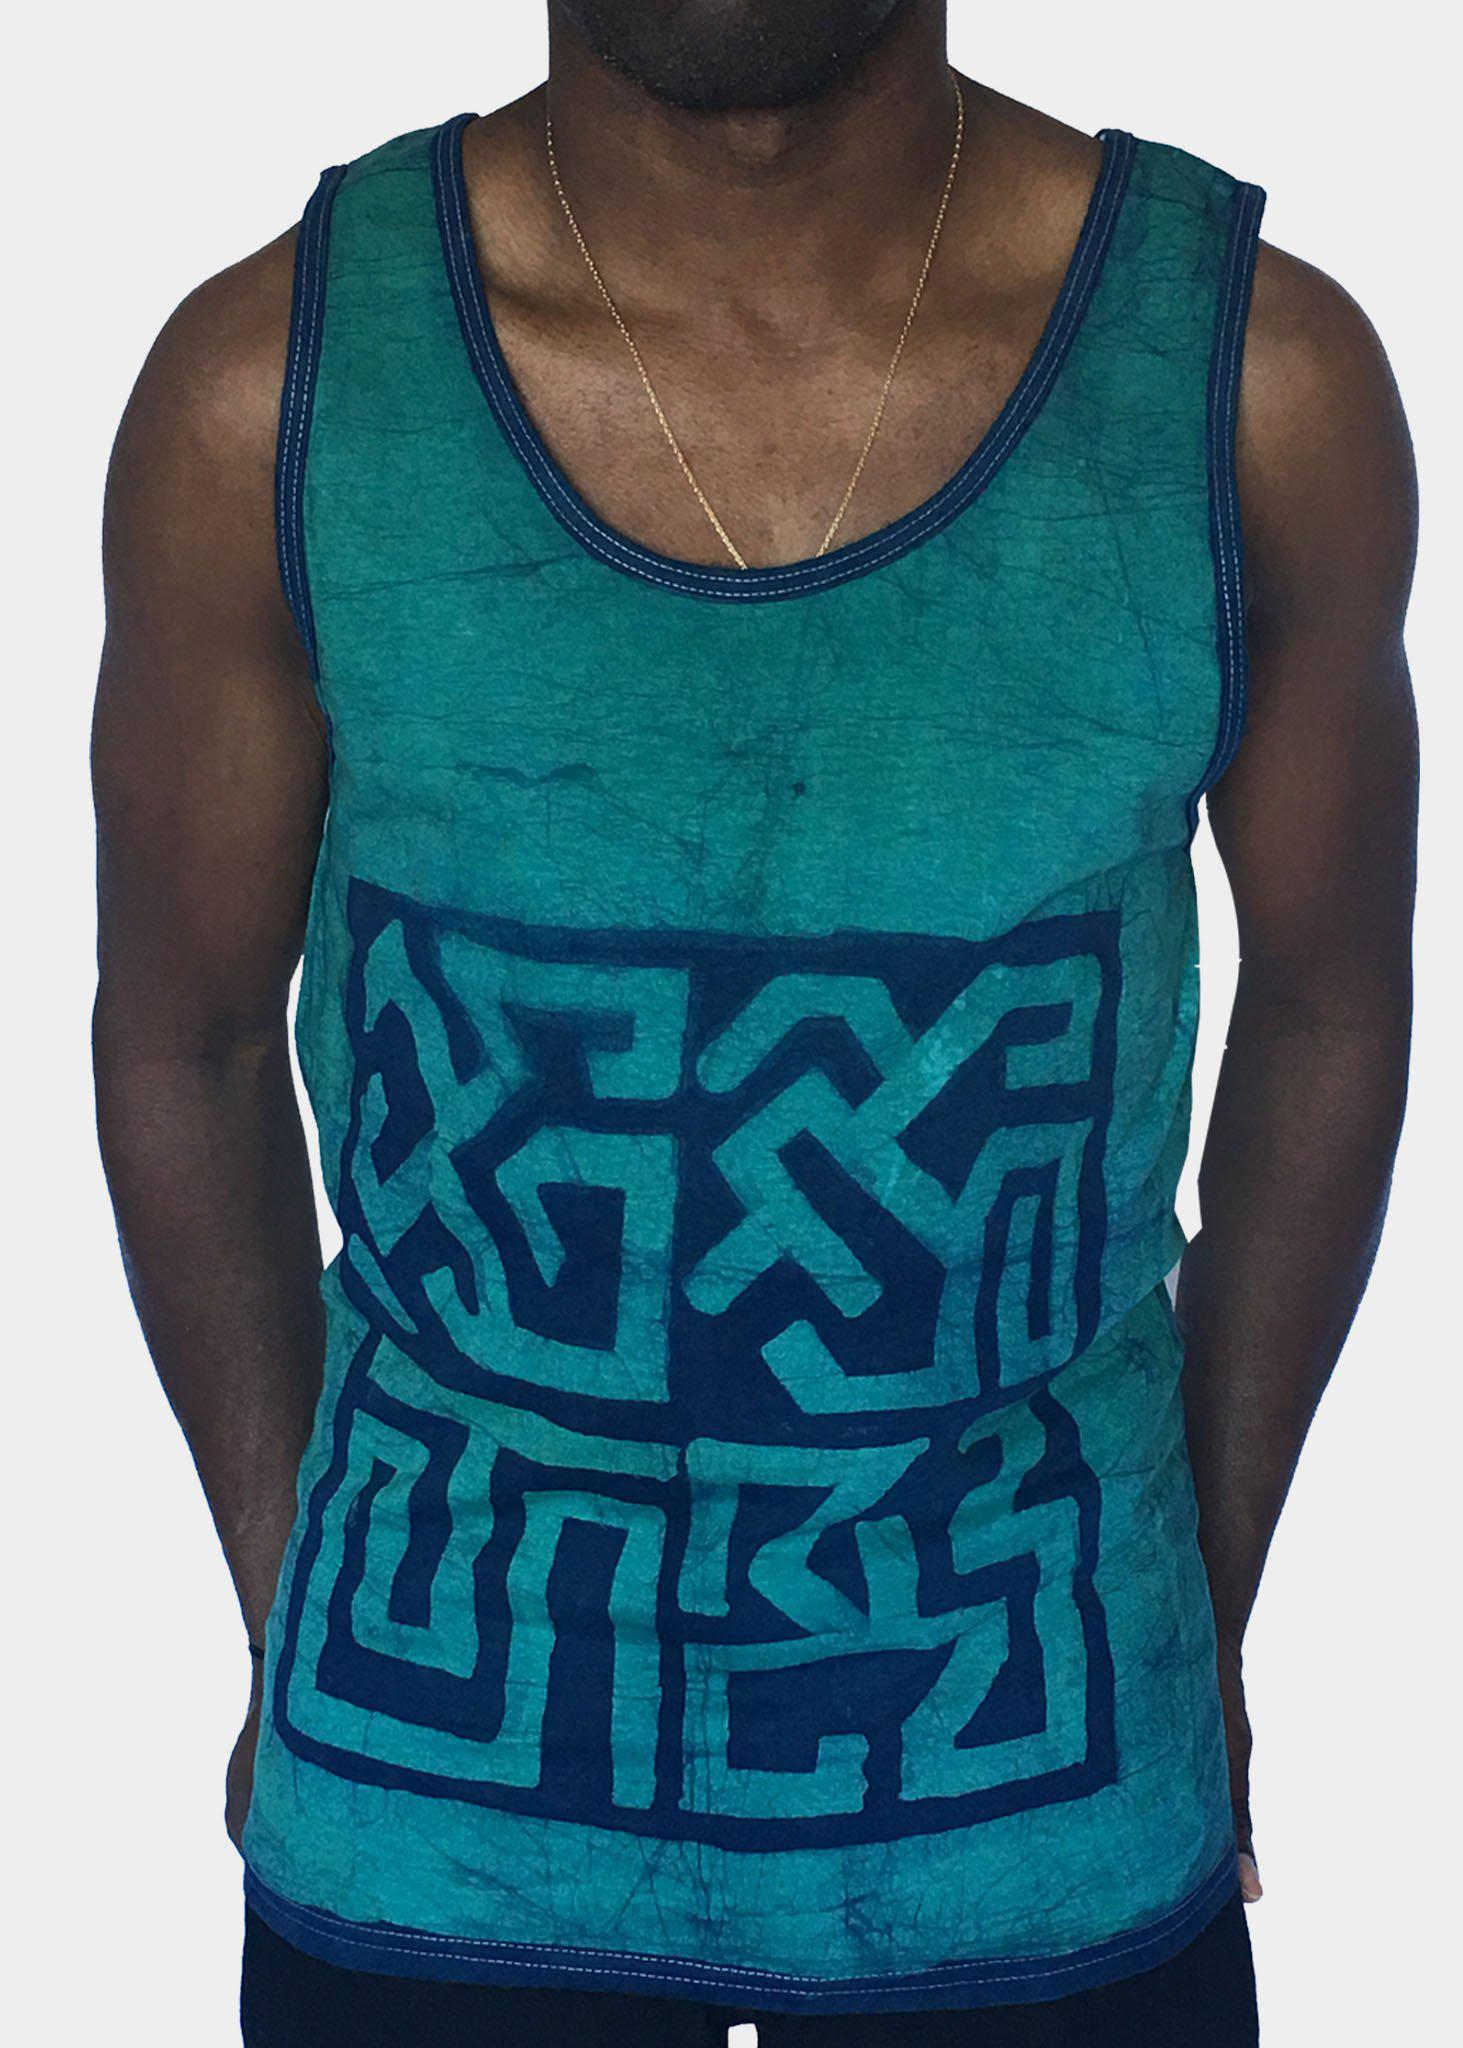 Green and Blue Tank Top with Geometric Designs